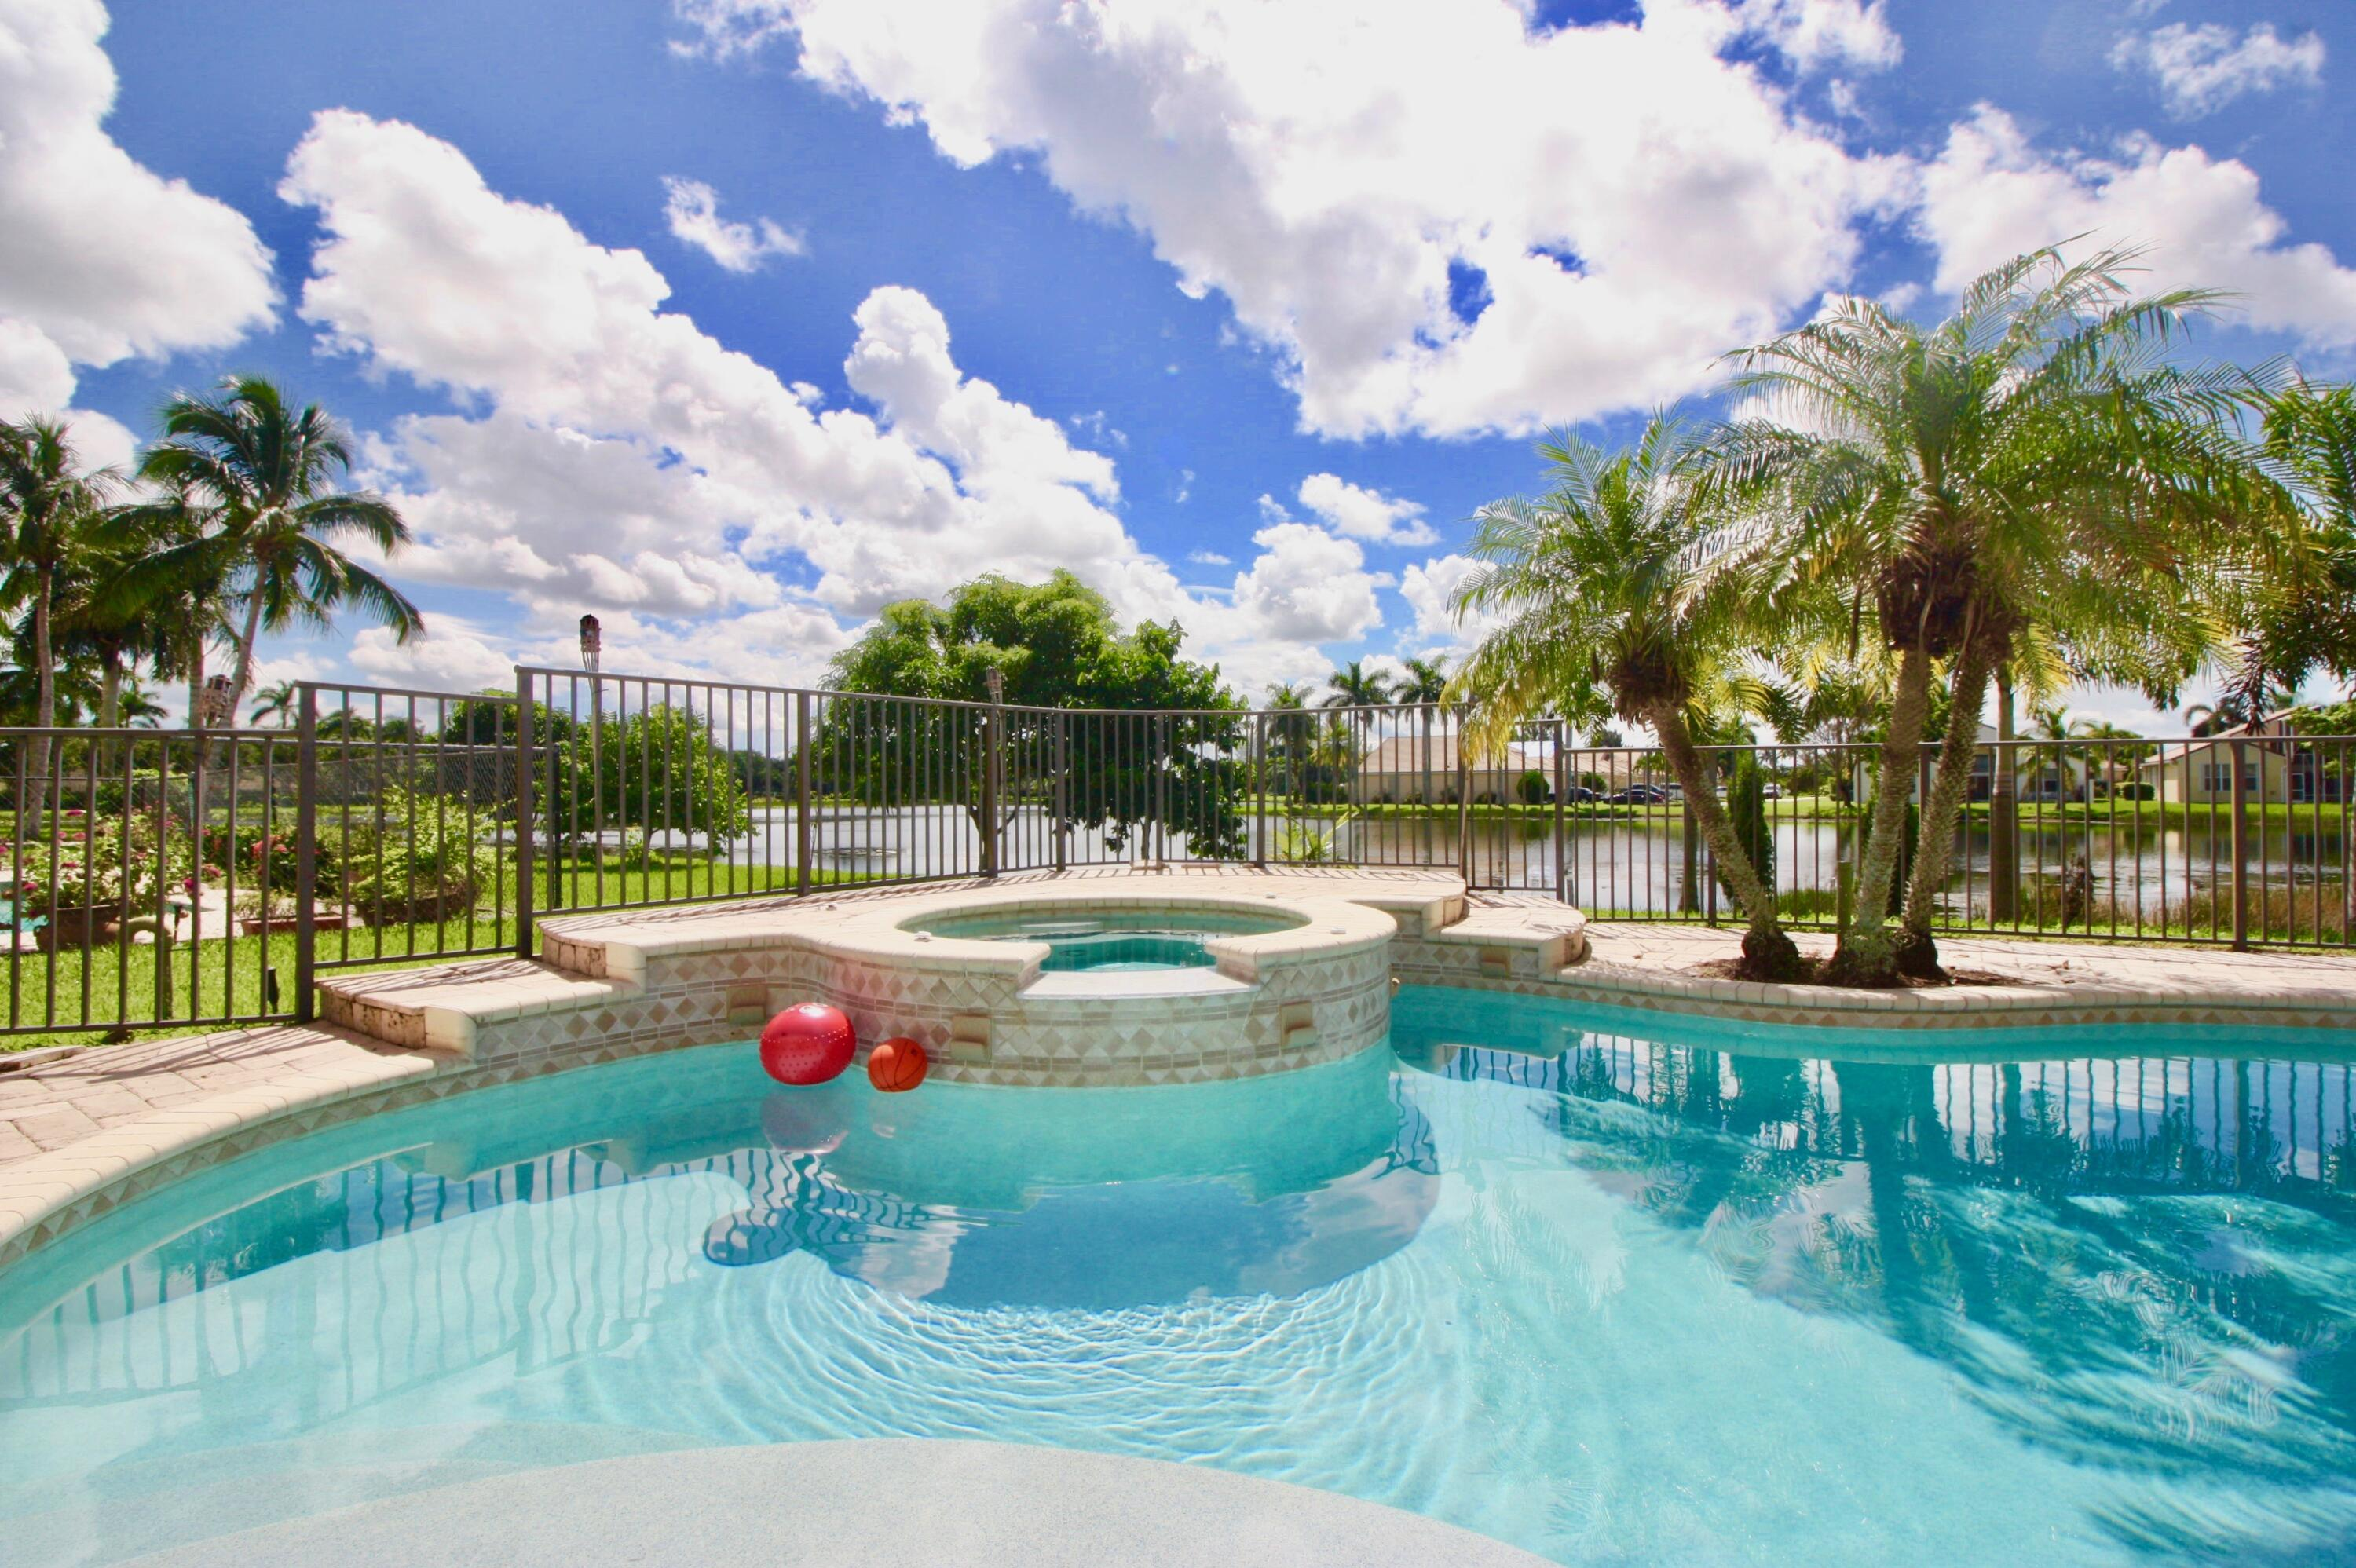 Your Family Will Love This Pool Area!